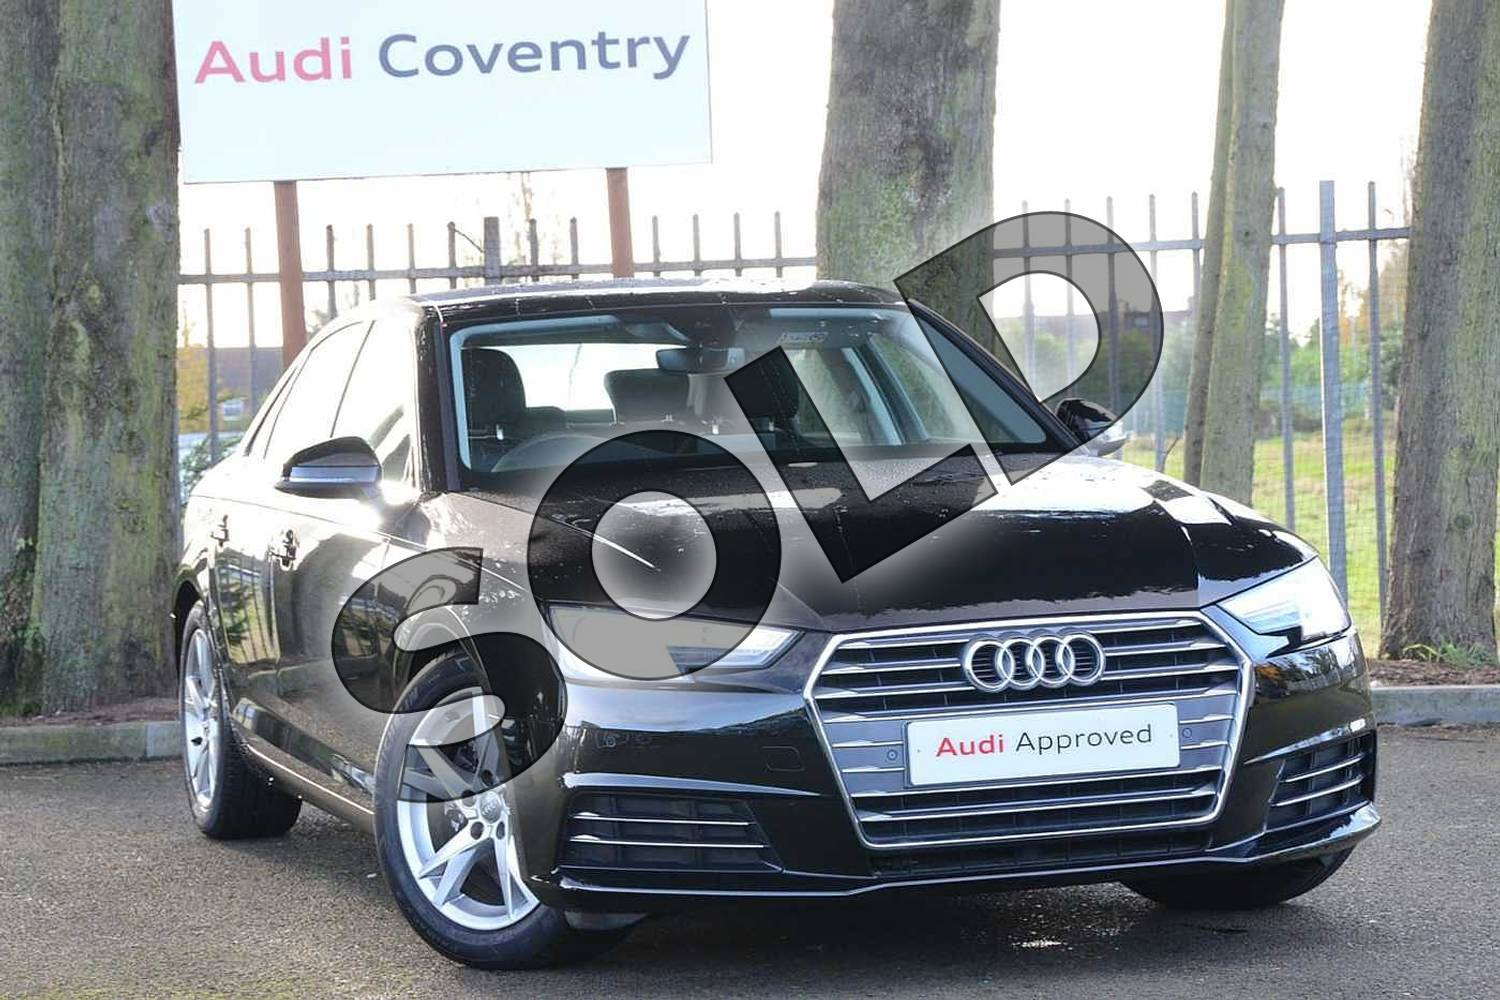 2018 Audi A4 Diesel Saloon Diesel 2.0 TDI Ultra SE 4dr in Myth Black Metallic at Stratford Audi